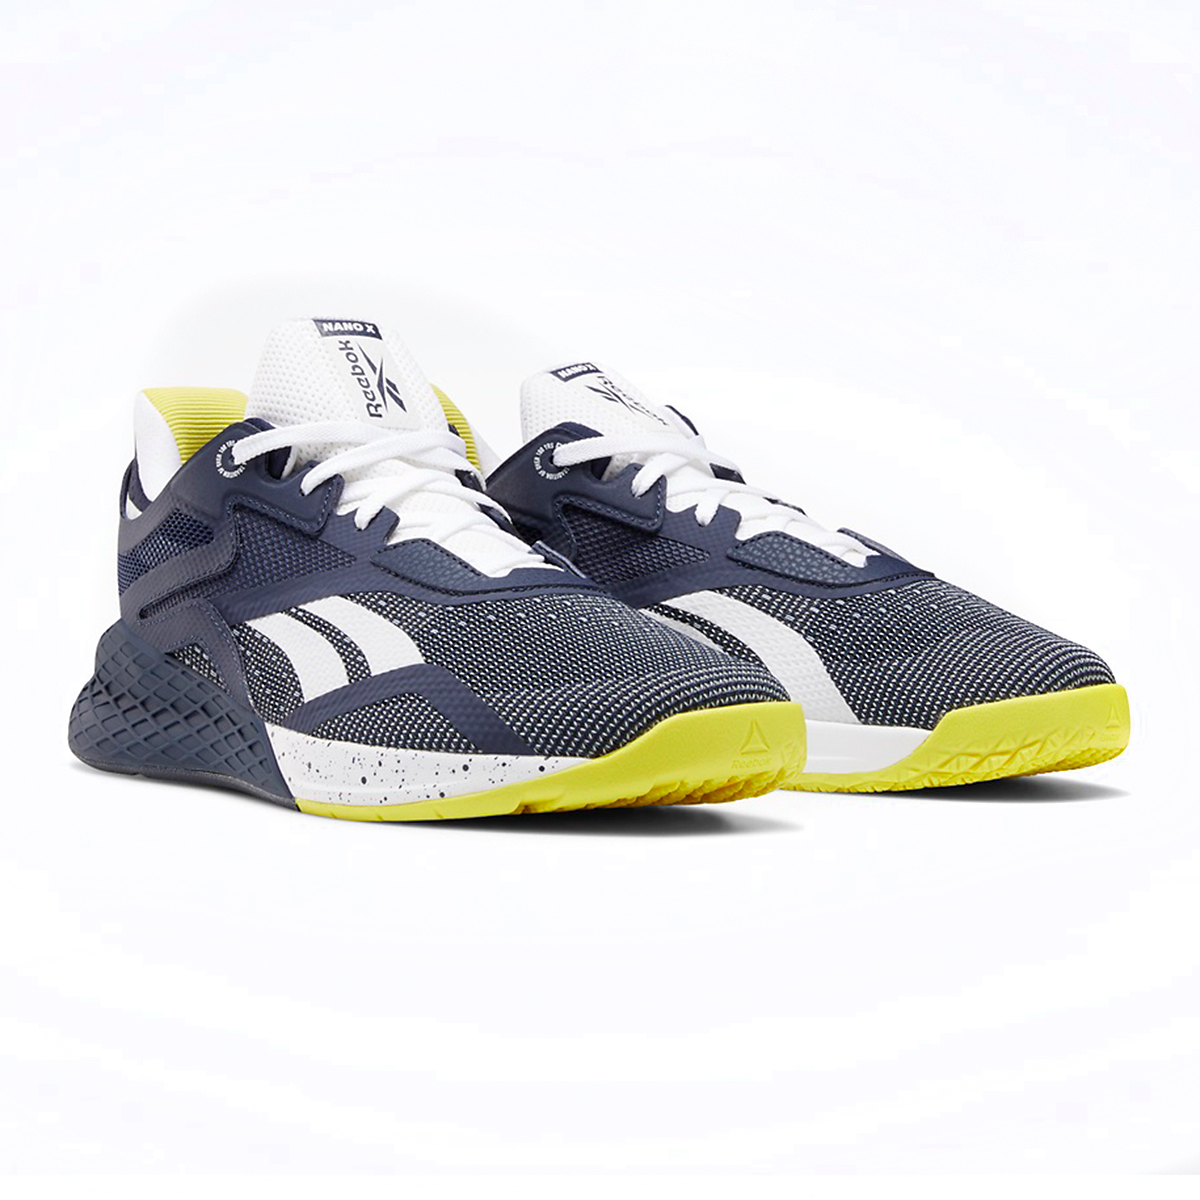 Men's Reebok Nano X Training Shoe - Color: Vector Navy/White/Chartreuse - Size: 6.5 - Width: Regular, Vector Navy/White/Chartreuse, large, image 2